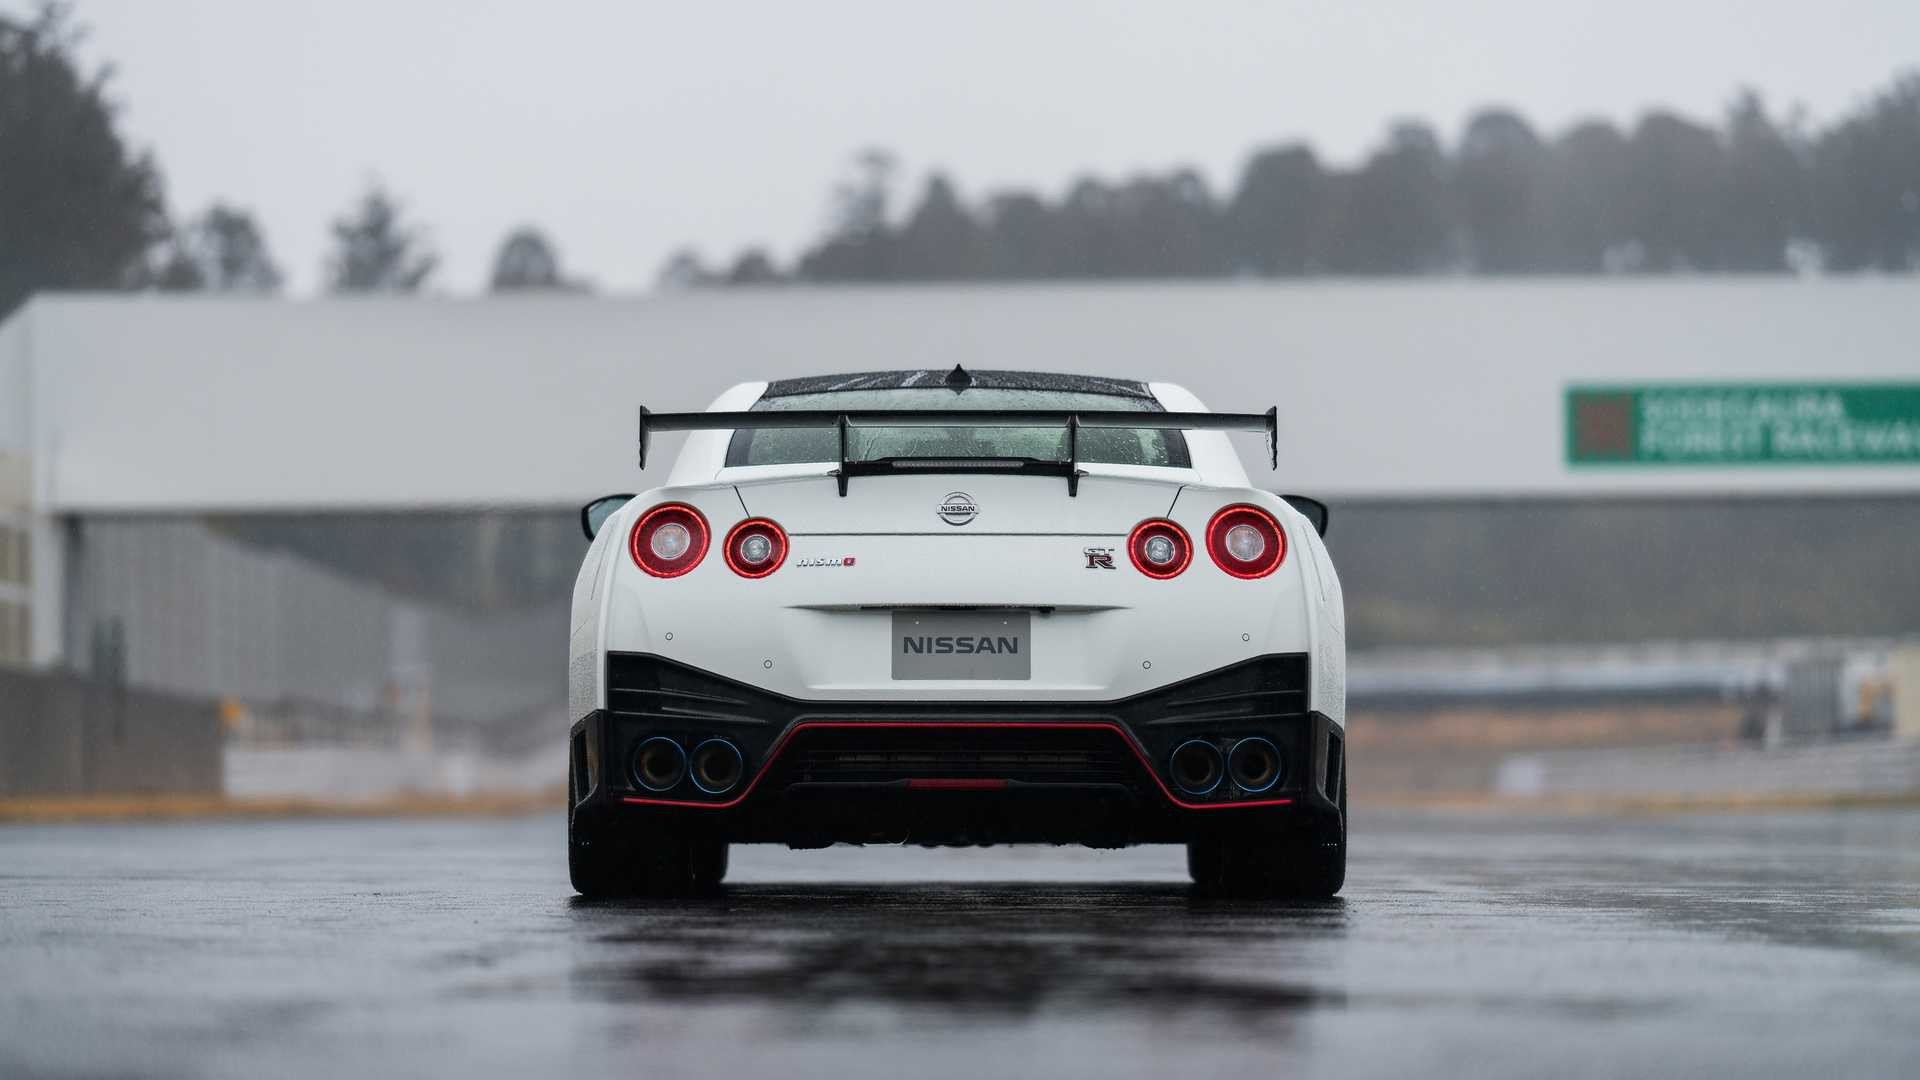 Res: 1920x1080, Back to 87+ Nissan GT-R Nismo Wallpapers